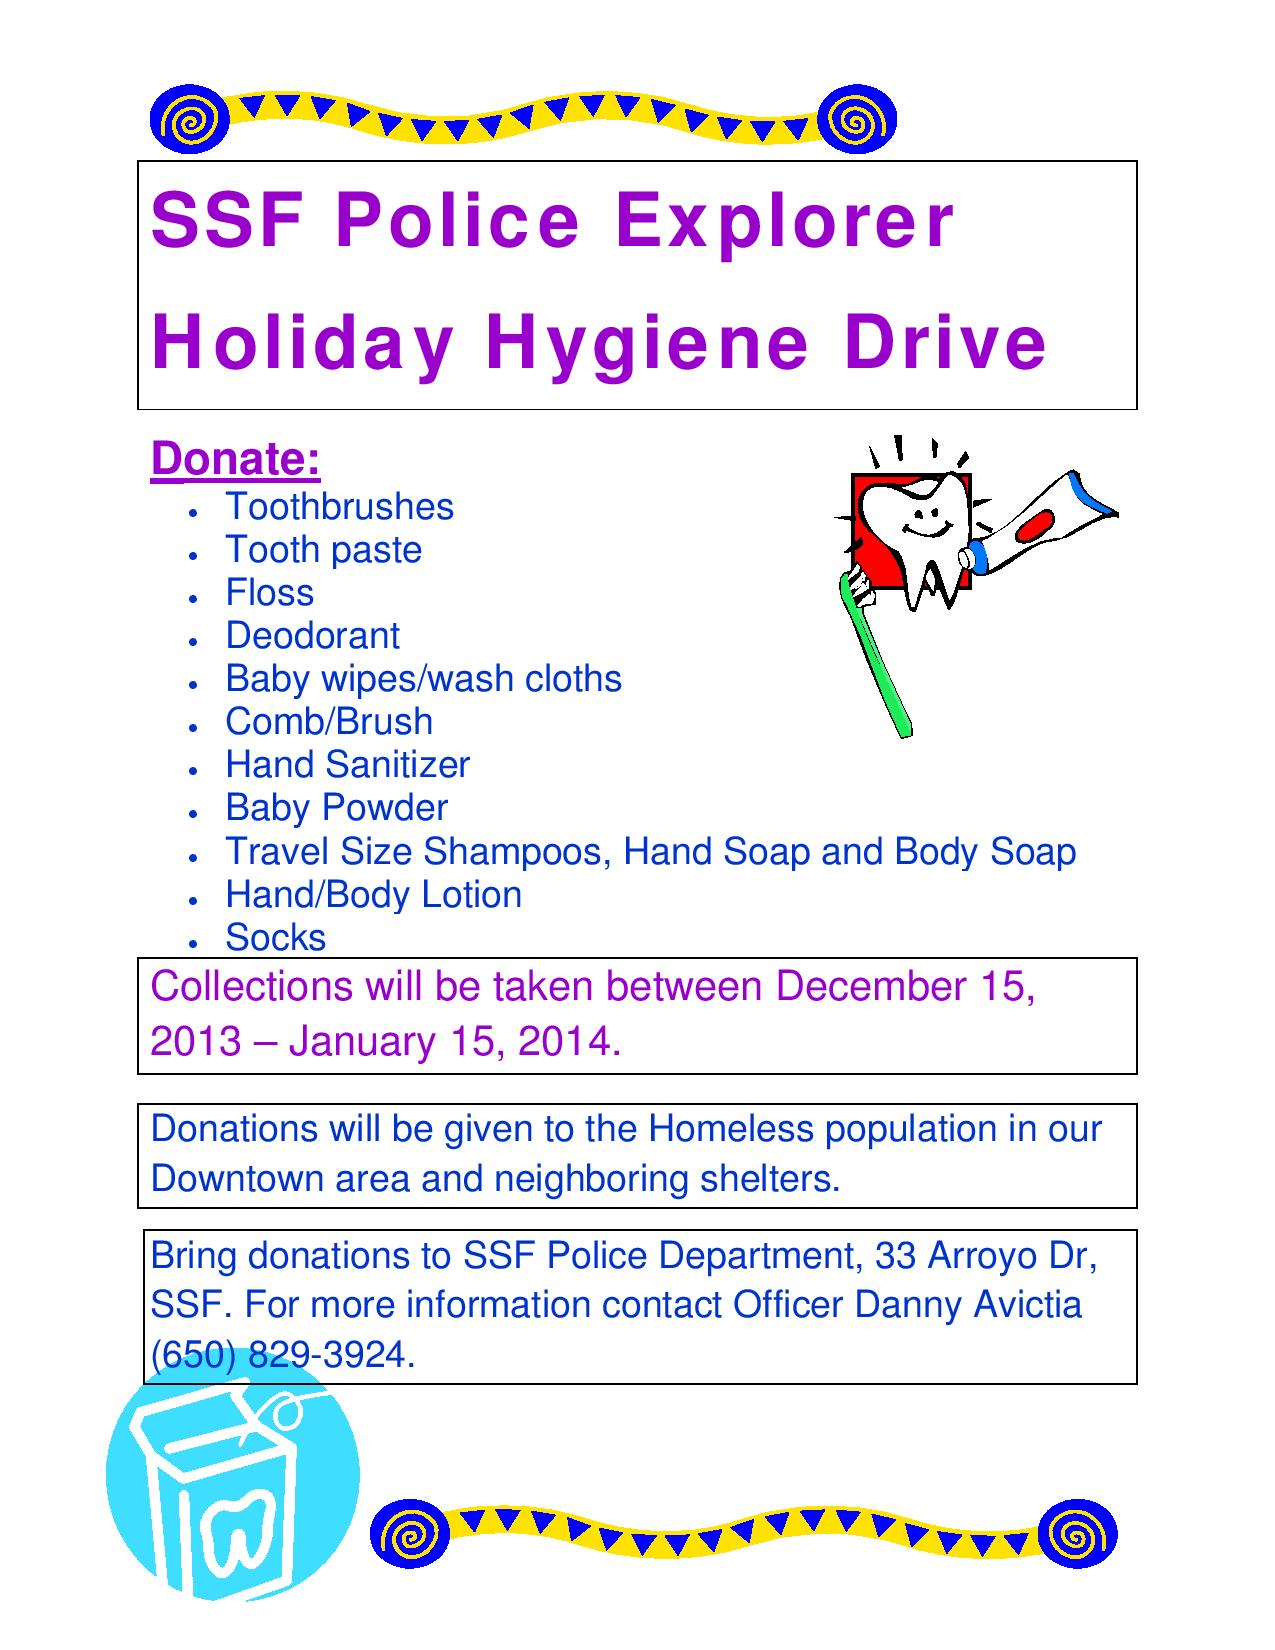 South San Francisco Explorer Holiday Hygiene Drive